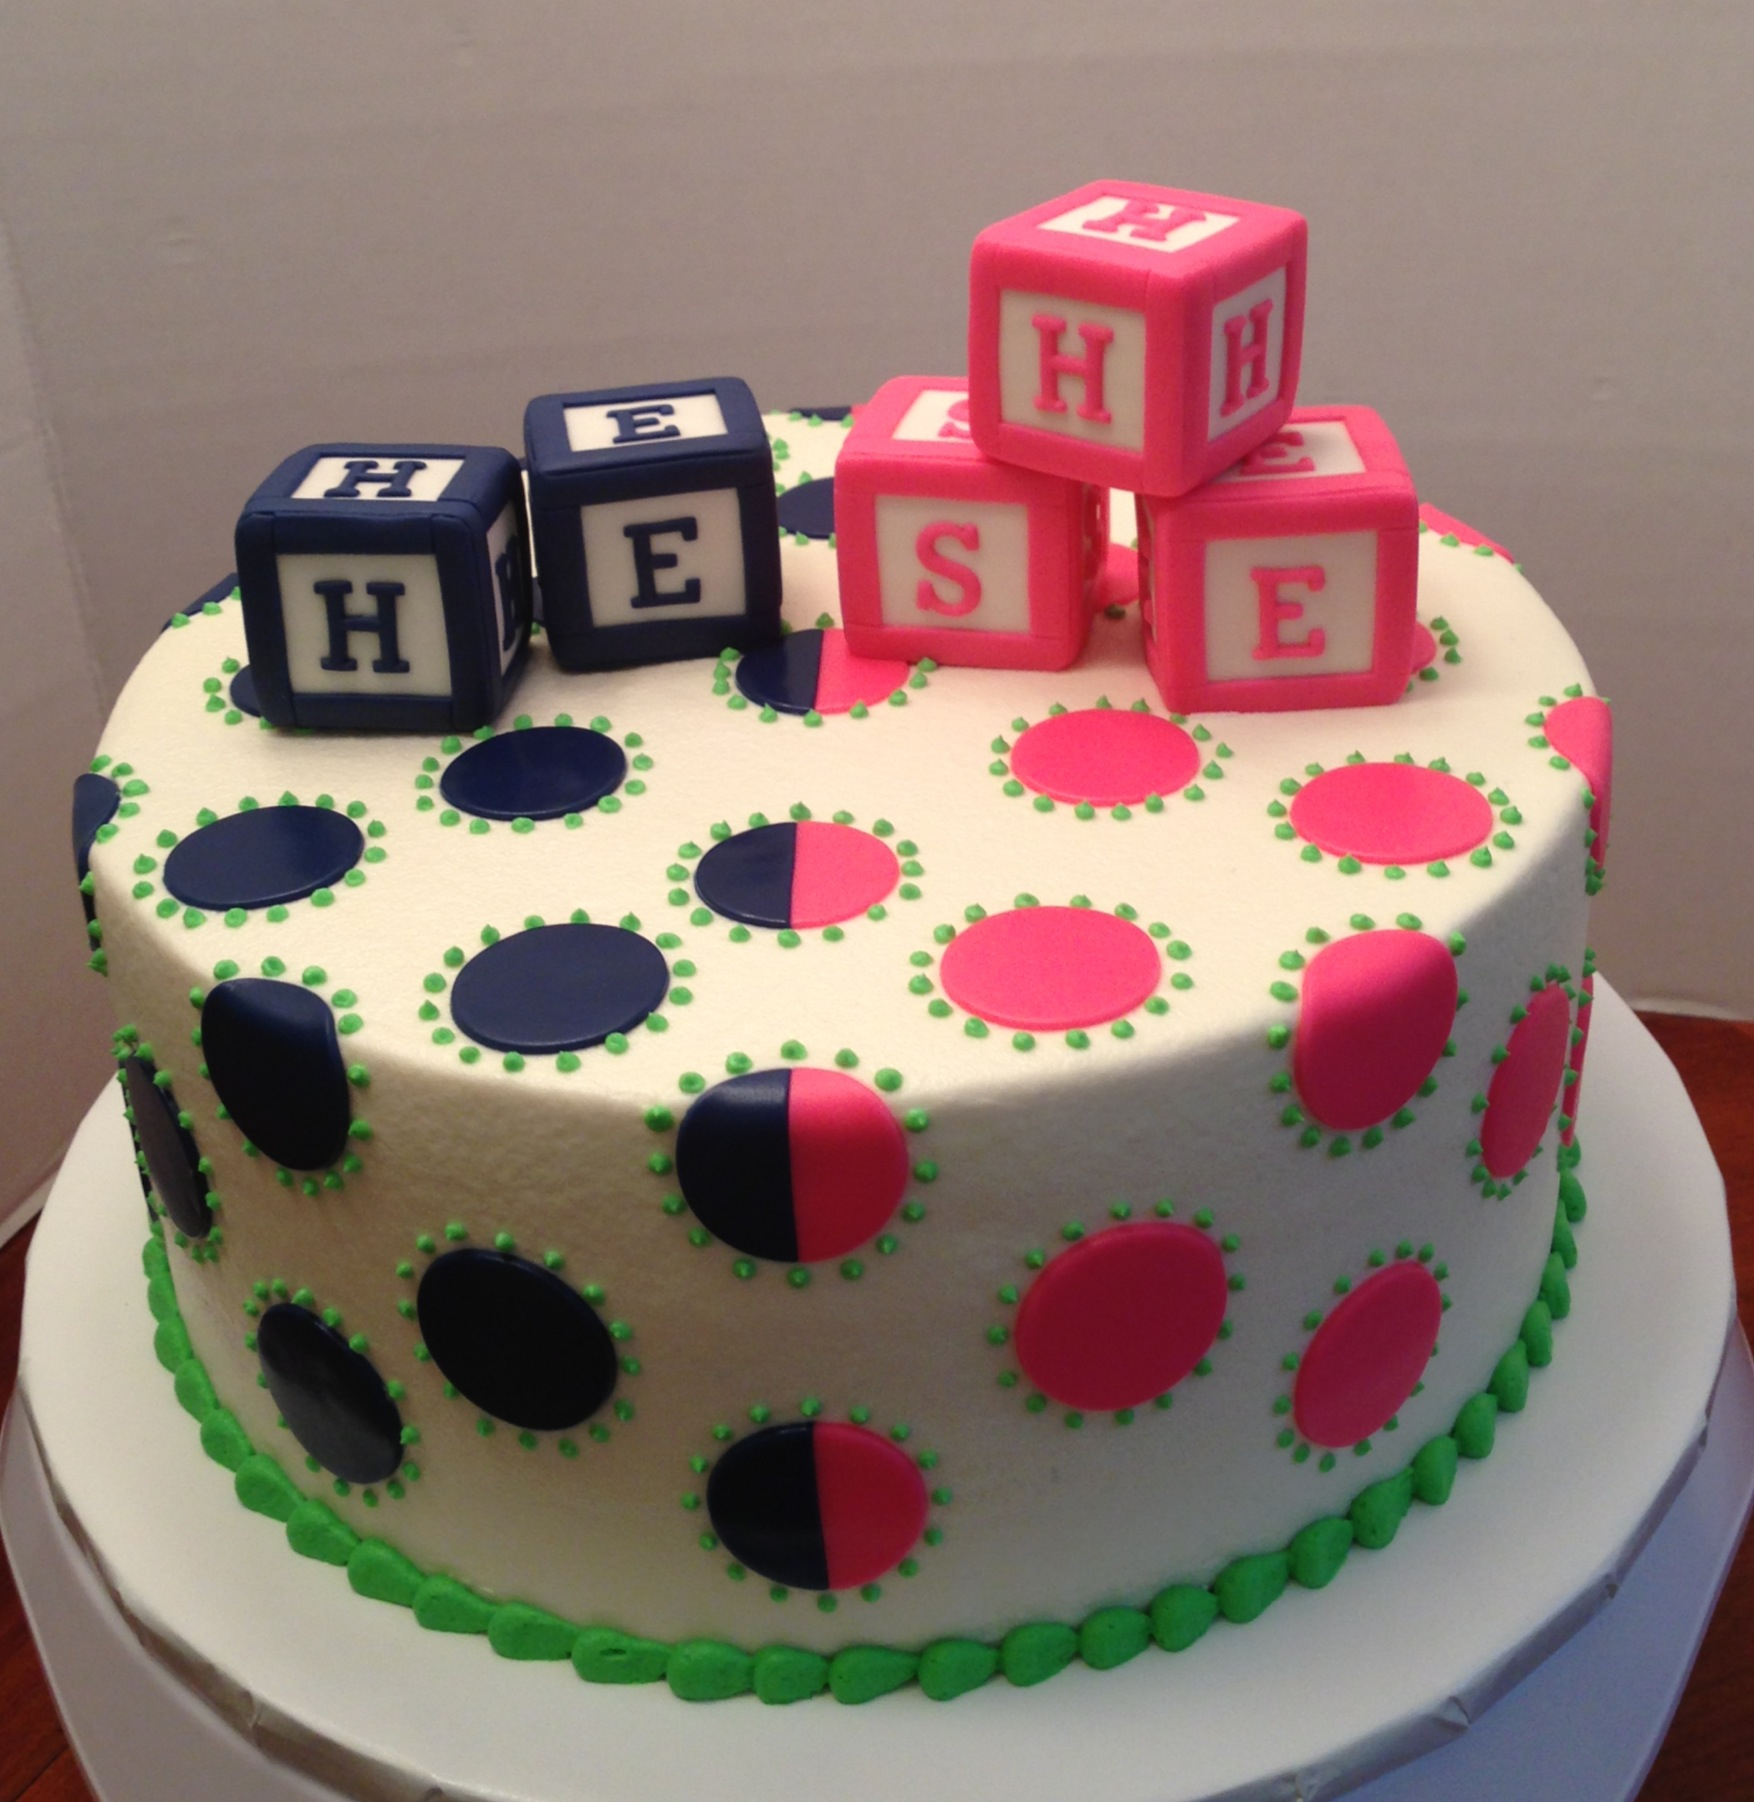 Cake Ideas To Reveal Gender Of Baby